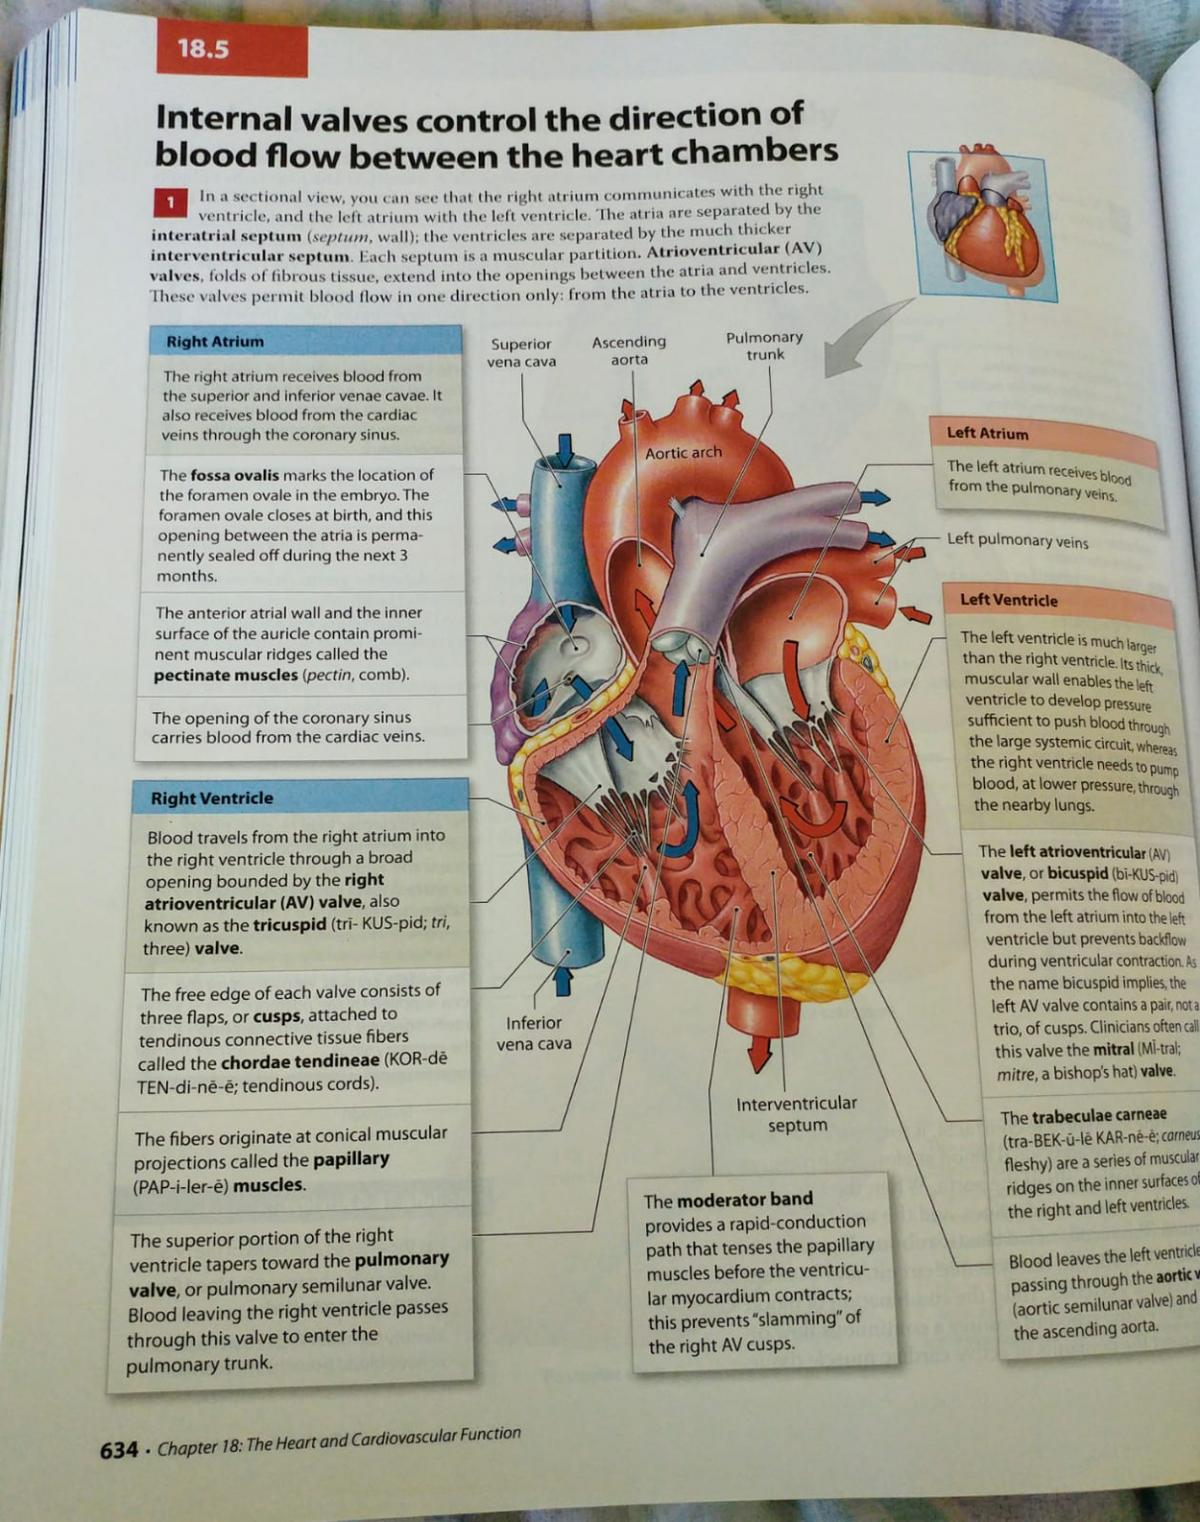 Visual Anatomy & Physiology Book (979 pages!) in Lewsey Farm